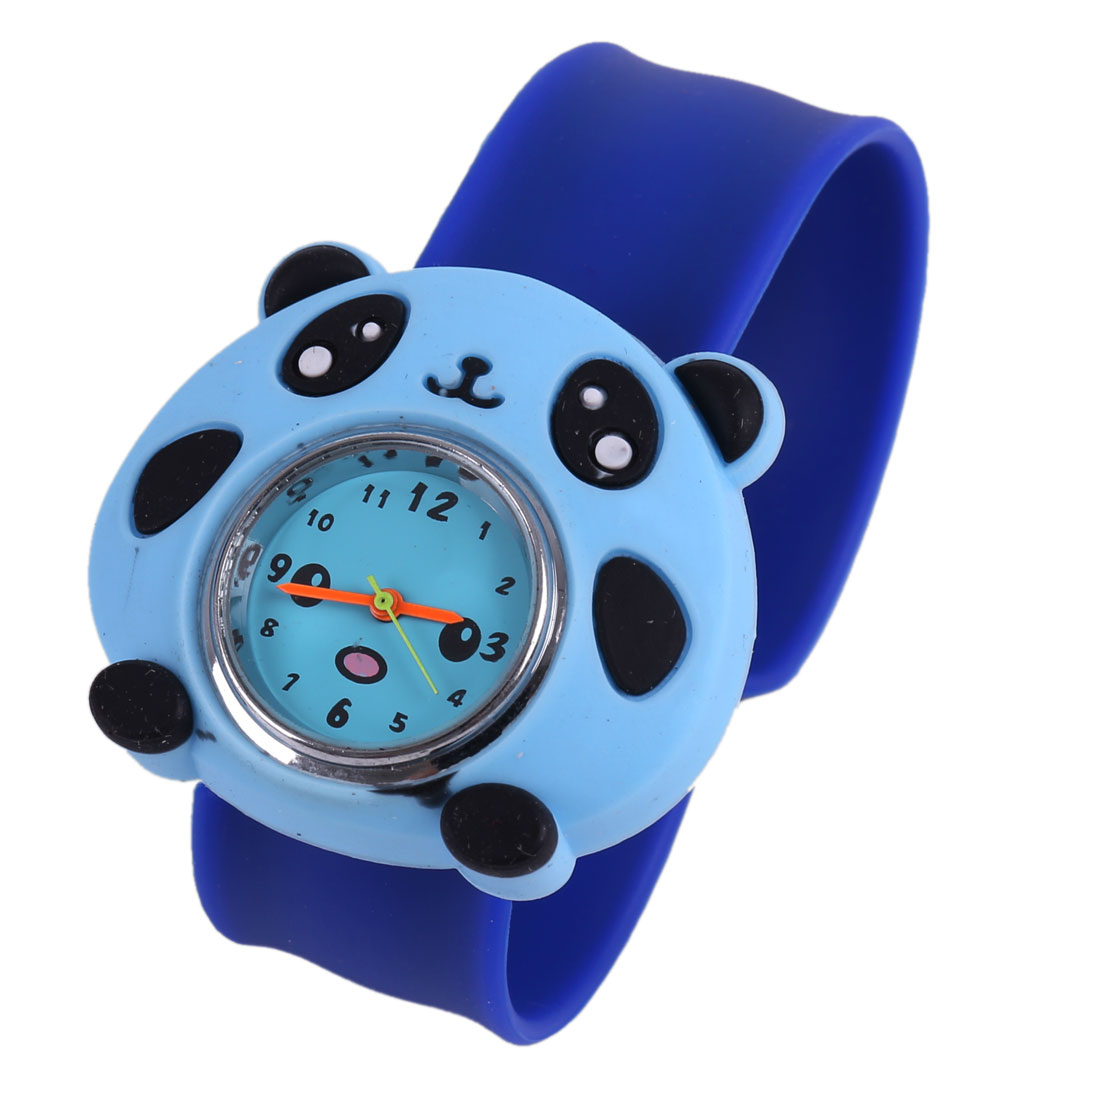 3D Cartoon Panda Design Wrist Watch for Children Royal Blue Sky Blue